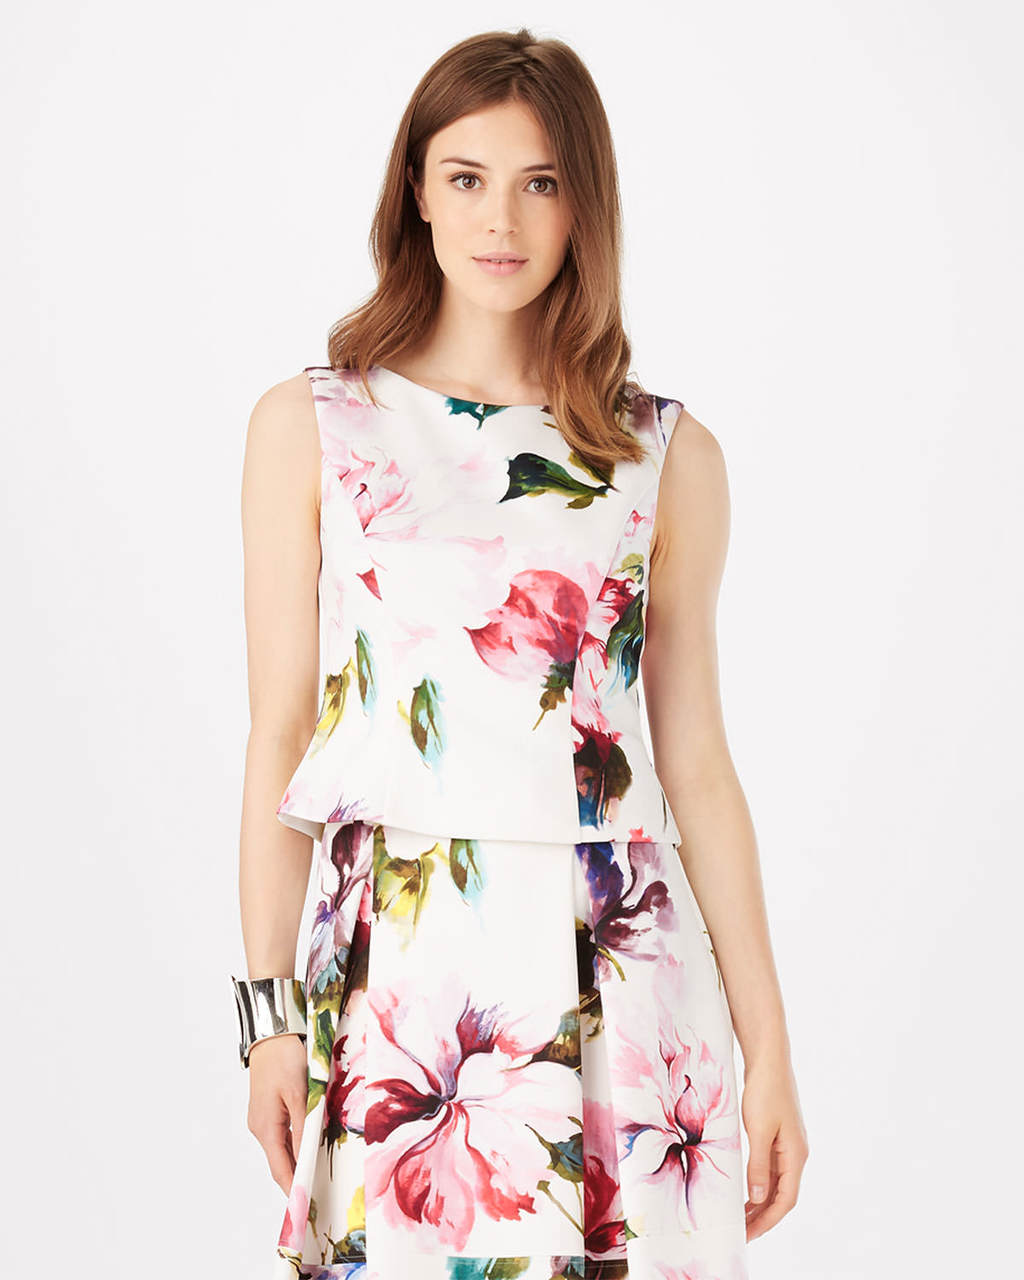 Botanical Scuba Top - neckline: round neck; sleeve style: sleeveless; predominant colour: white; secondary colour: pink; length: standard; style: top; fibres: polyester/polyamide - stretch; occasions: occasion; fit: body skimming; sleeve length: sleeveless; pattern type: fabric; pattern: florals; texture group: other - light to midweight; pattern size: big & busy (top); multicoloured: multicoloured; season: s/s 2016; wardrobe: event